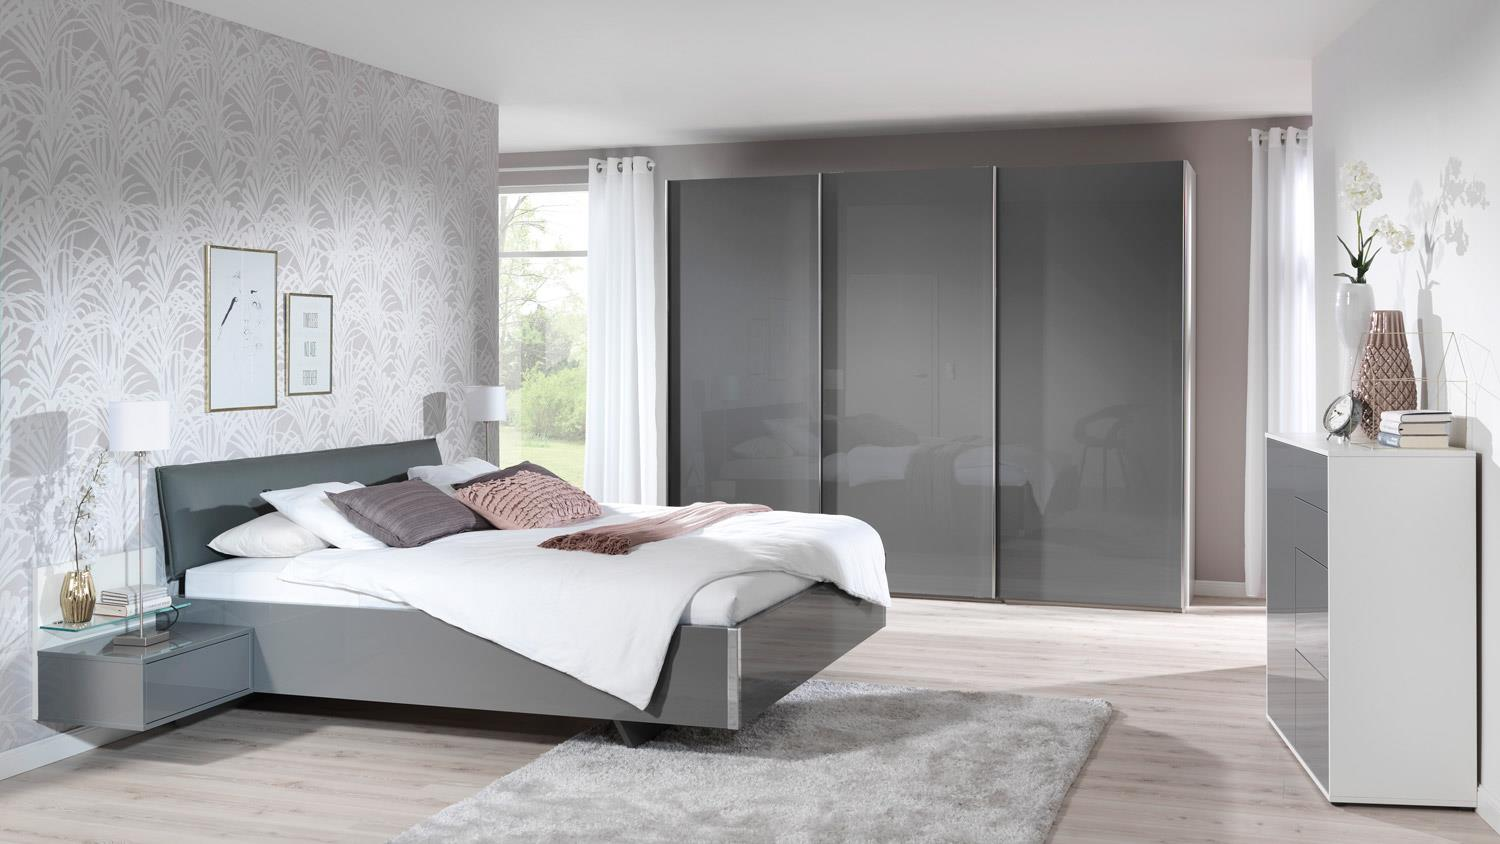 schwebet renschrank volcano schrank grau hochglanz wei wellem bel. Black Bedroom Furniture Sets. Home Design Ideas